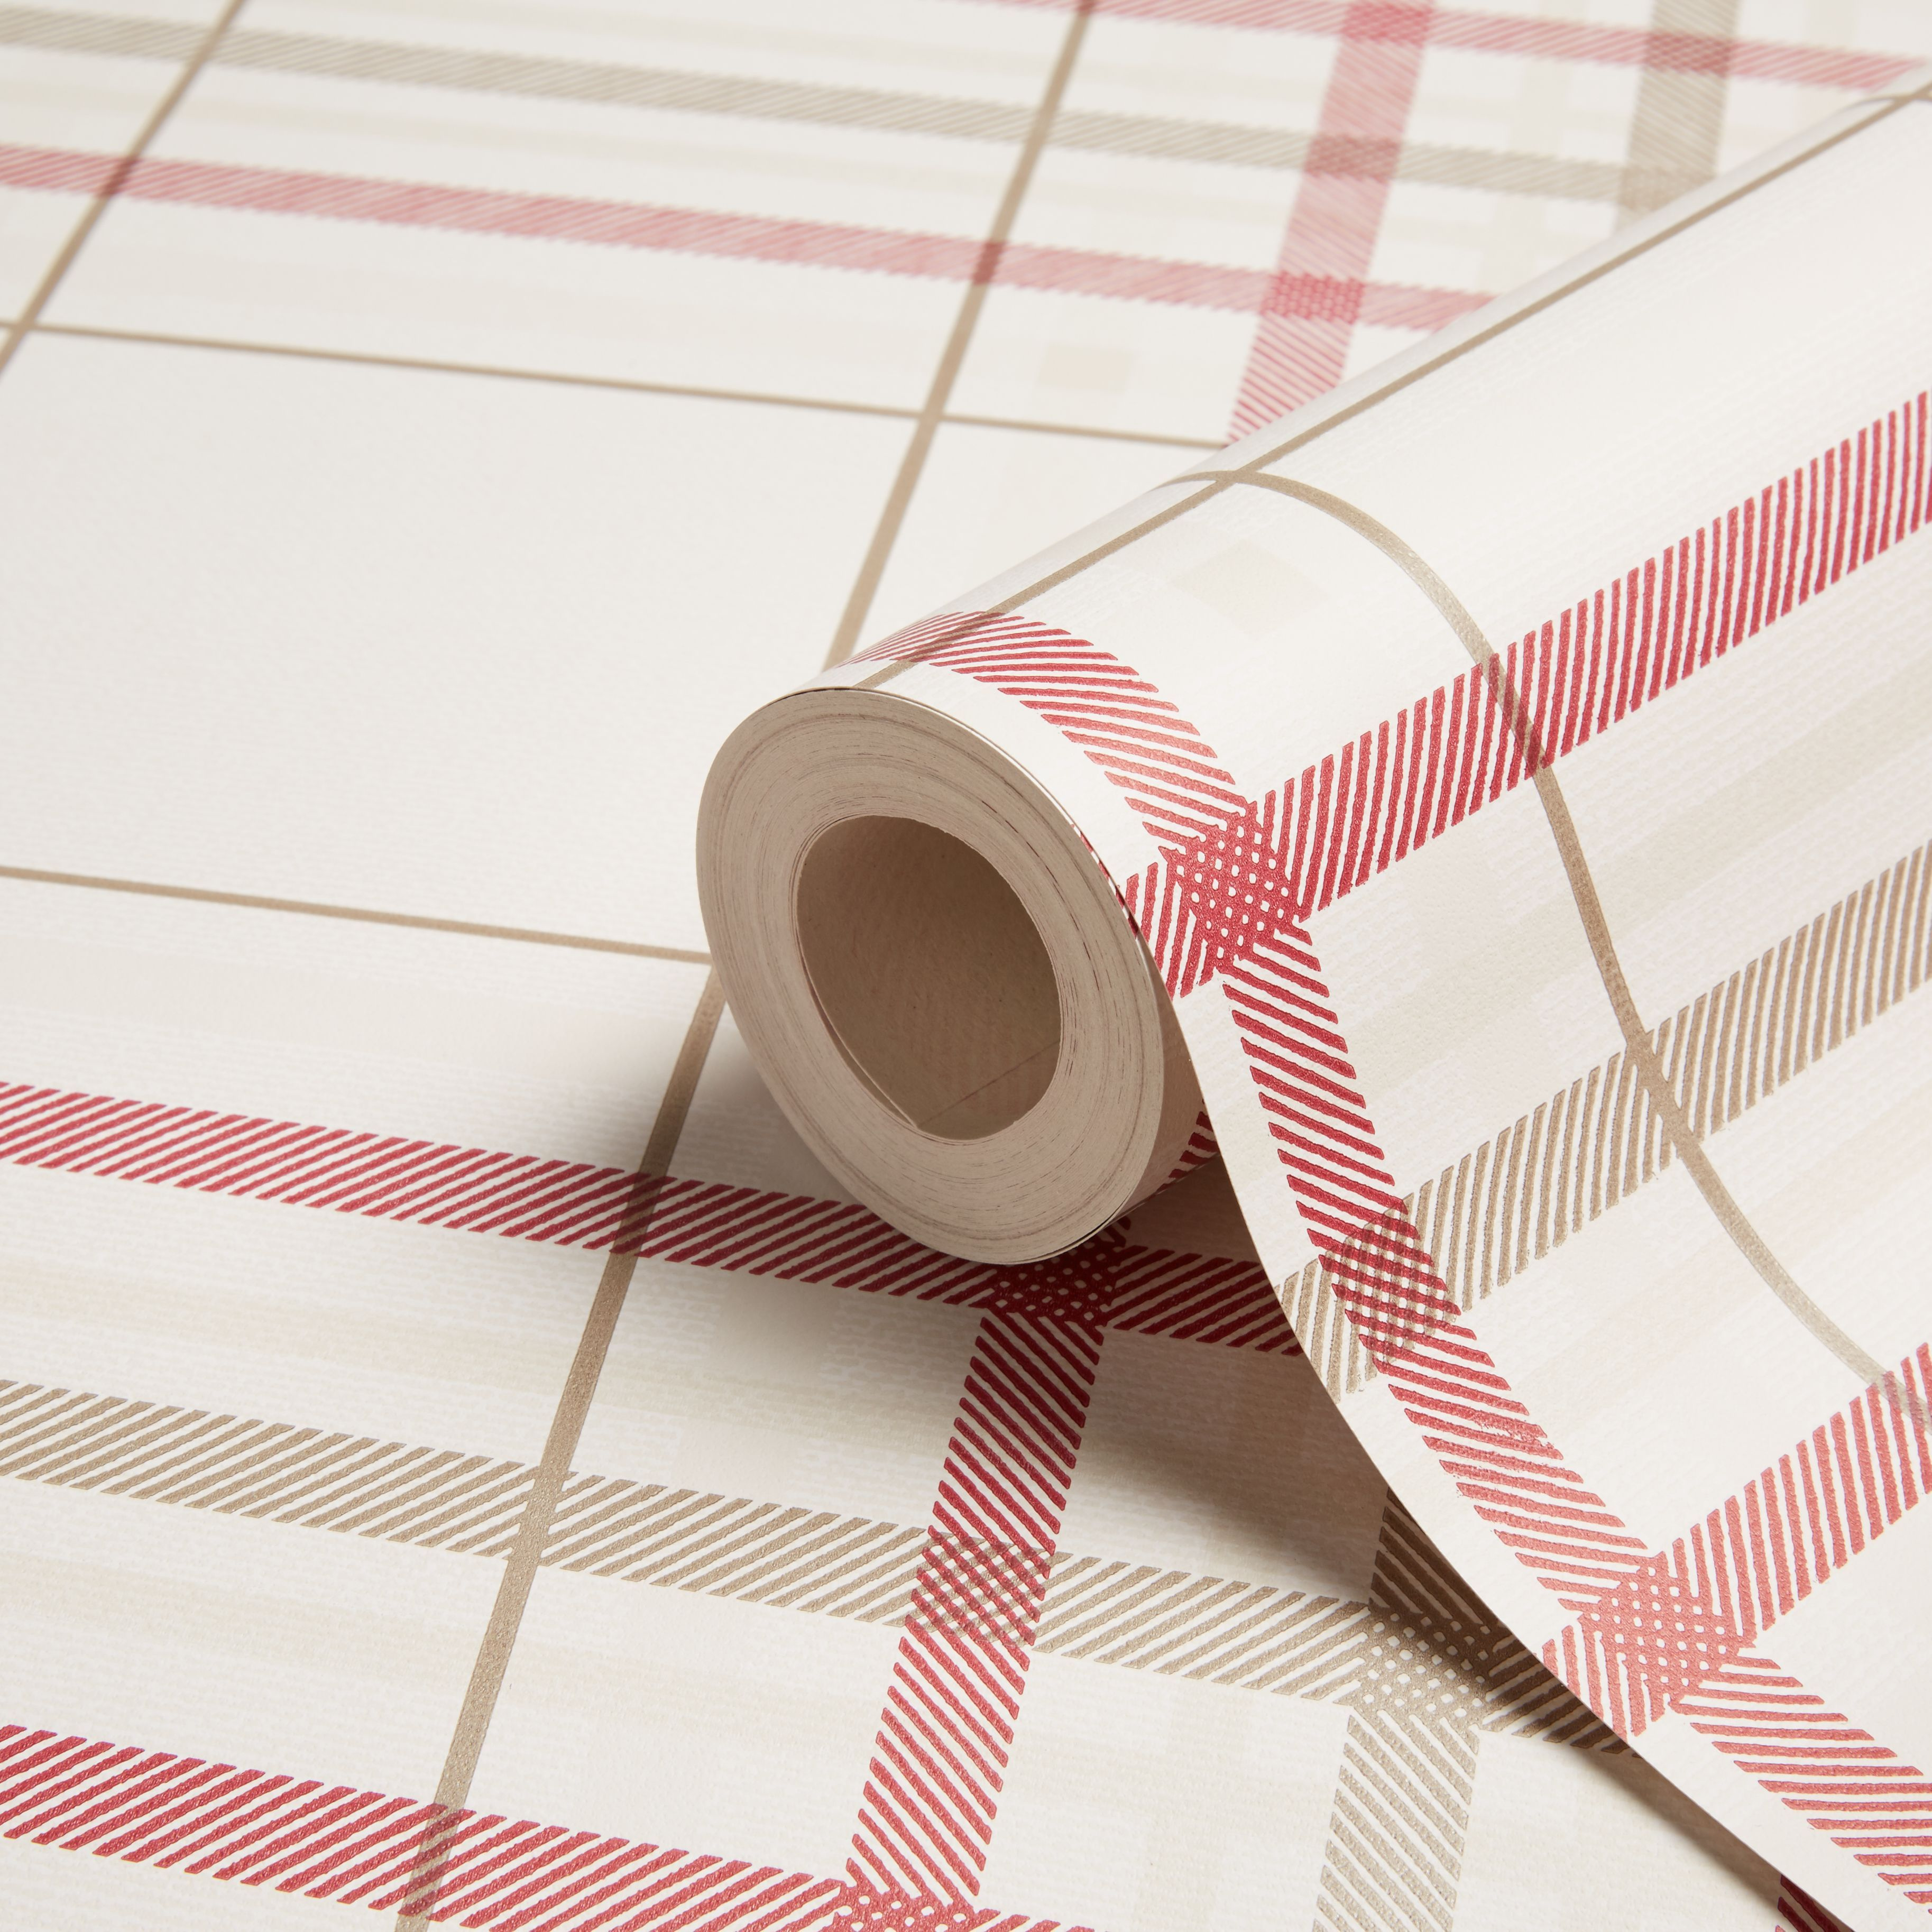 Diy supplies accessories diy at b q - Cream Red Plaid Wallpaper B Q For All Your Home And Garden Supplies And Advice On All The Latest Diy Trends